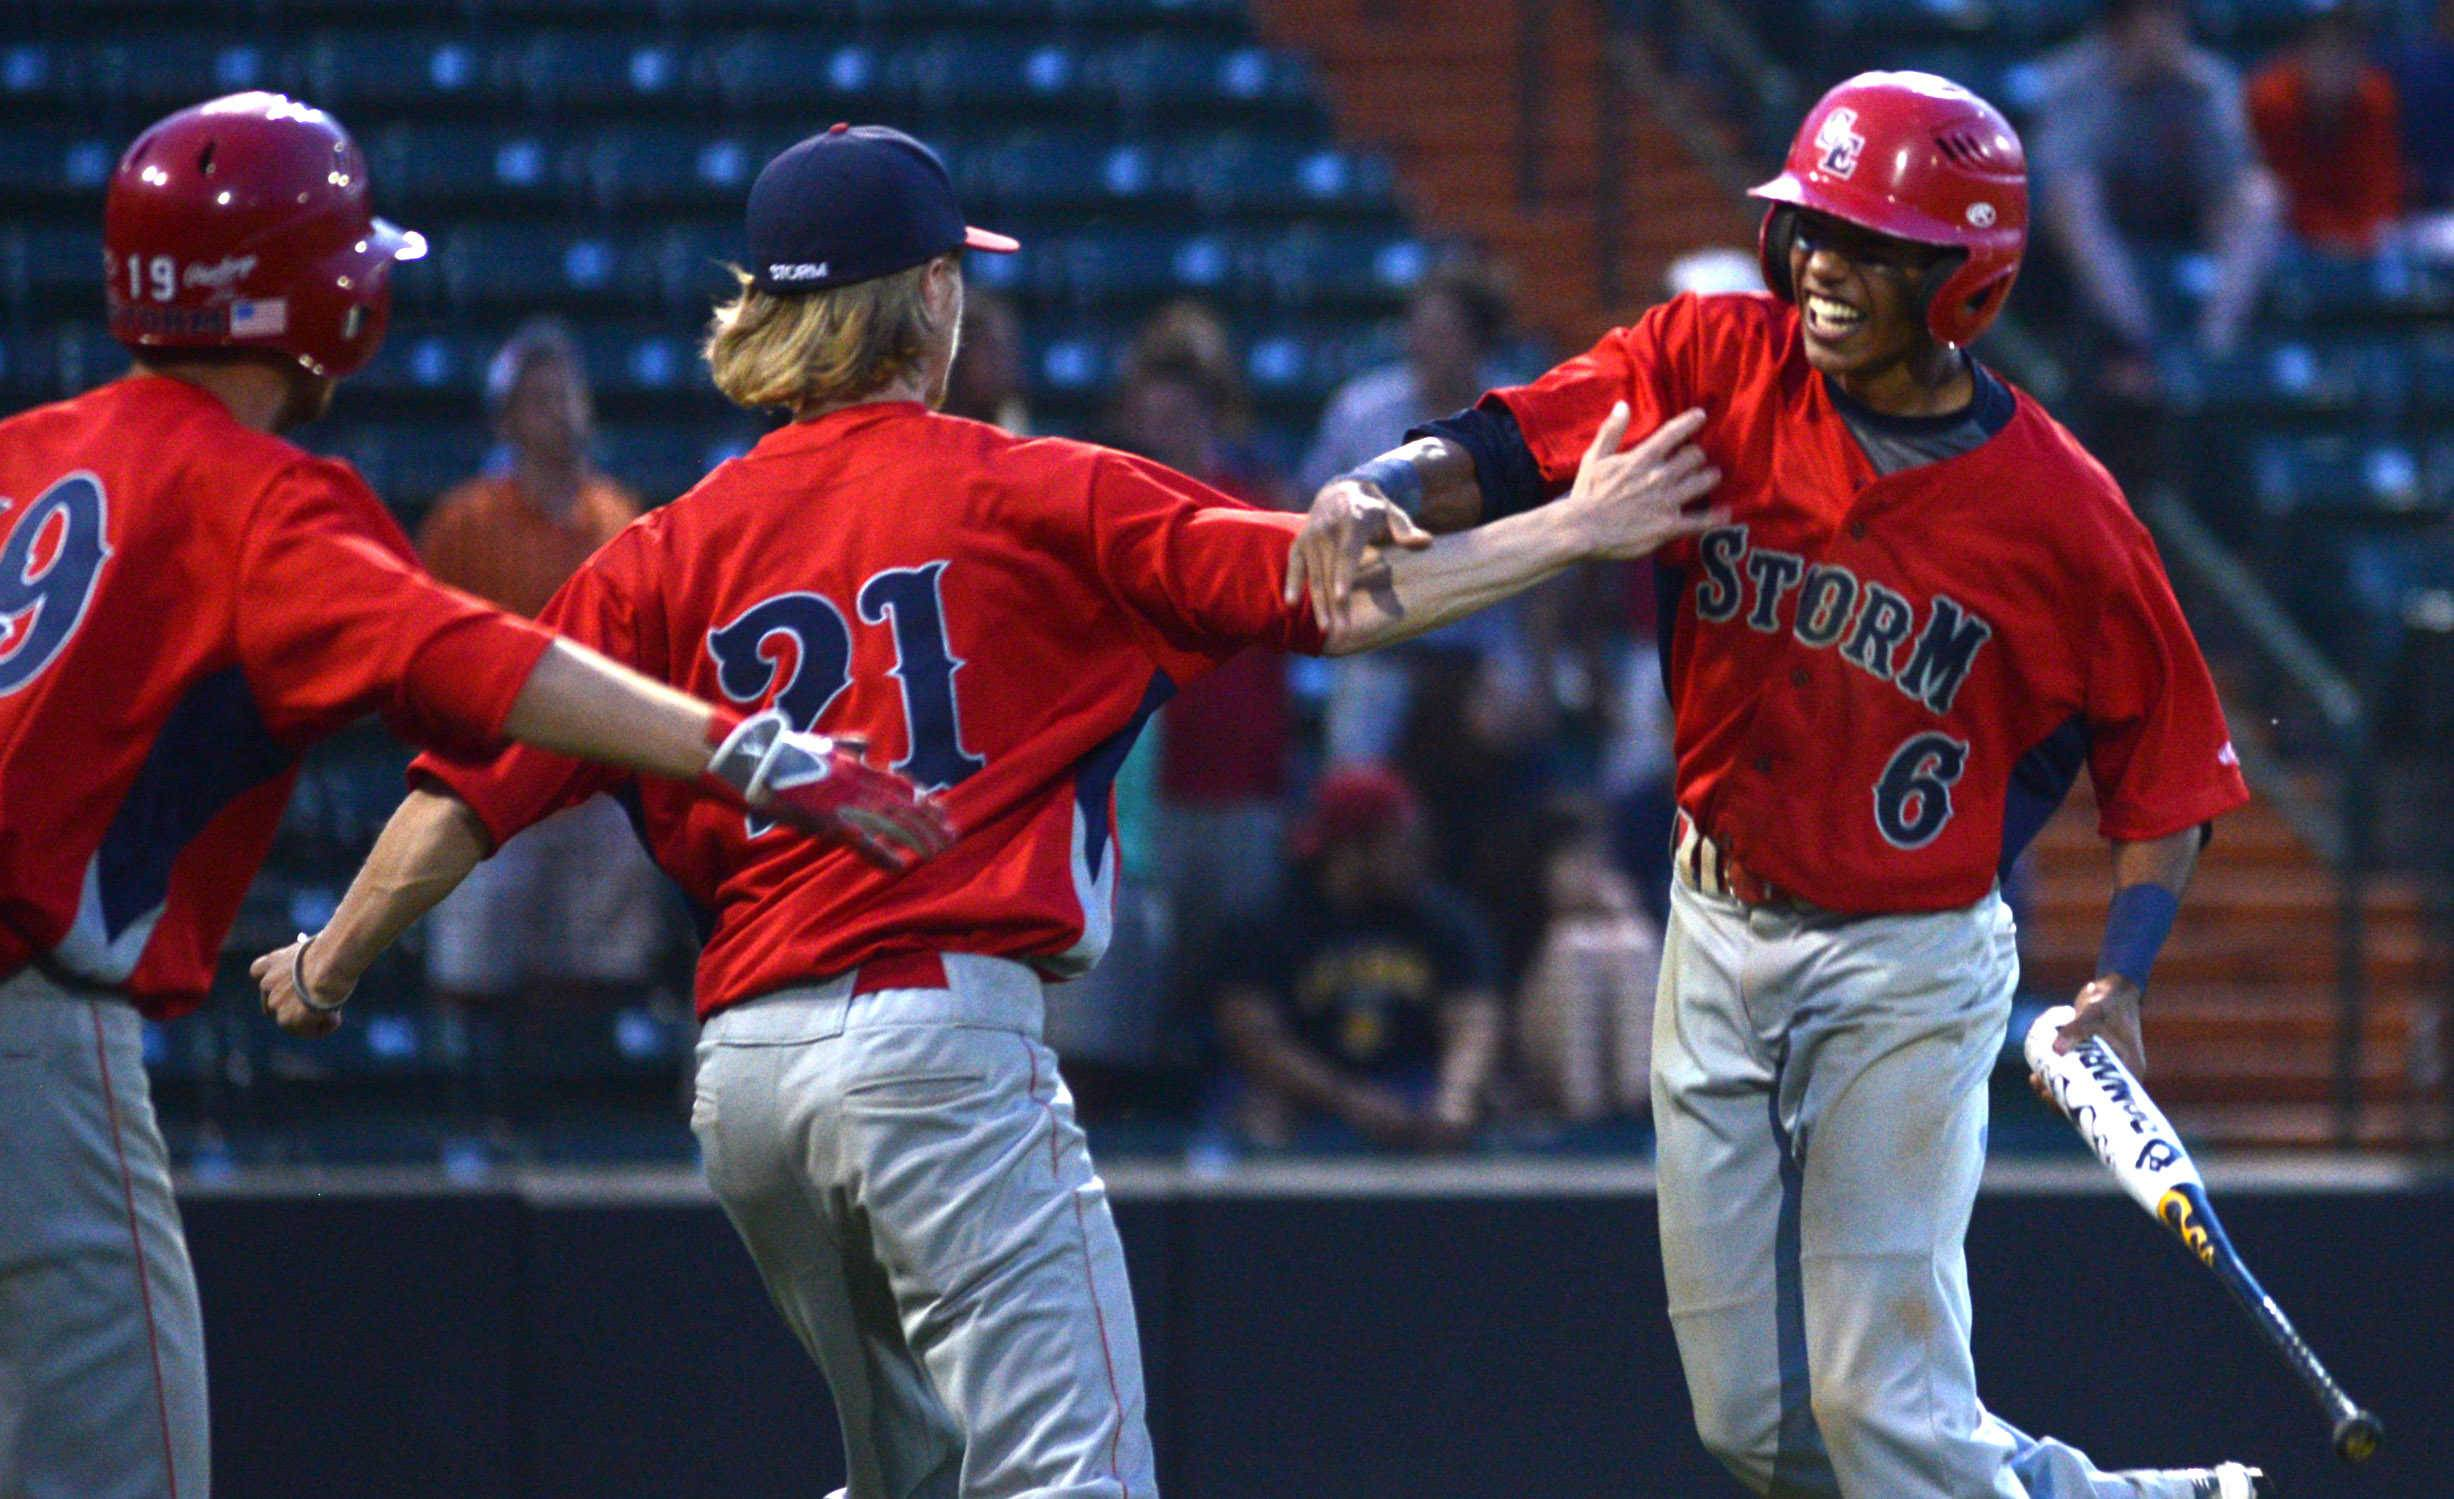 South Elgin's Justin Howard, right, is greeted by Craig Kelly, center, and Jared Kramer, left, after Howard scored during the Class 4A supersectional baseball game against Evanston at Boomers Stadium in Schaumburg on Monday night.